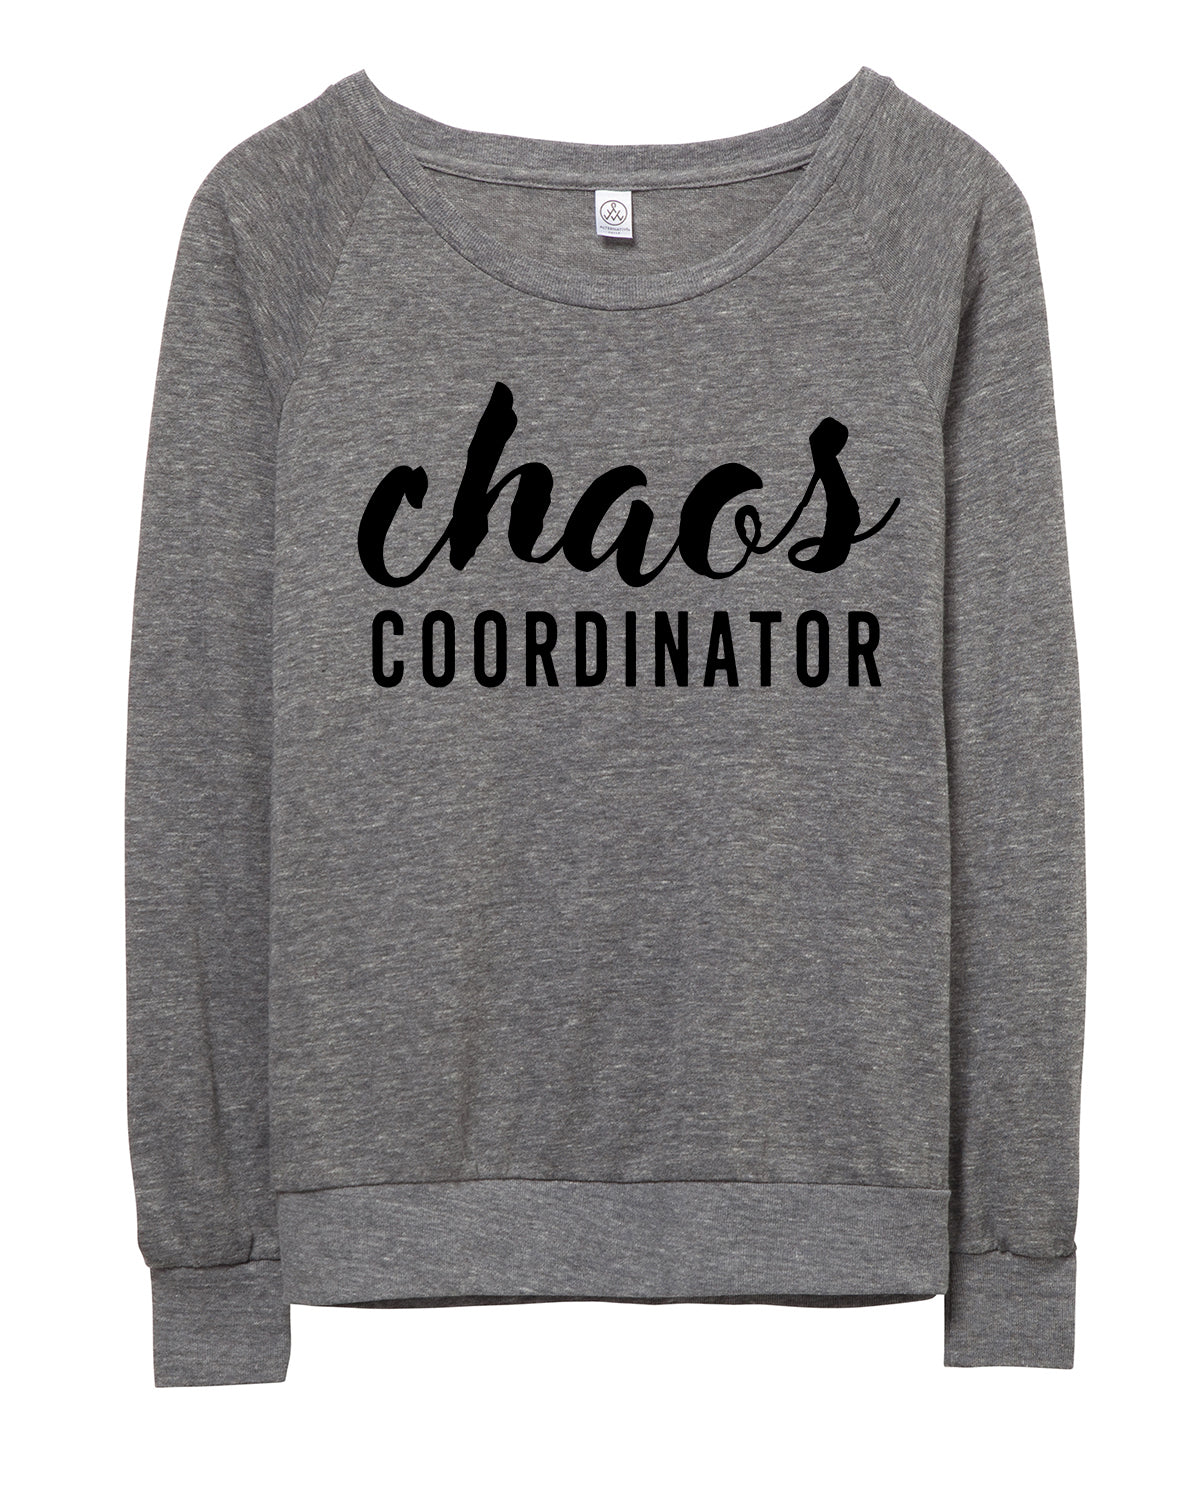 Chaos Coordinator Slouchy Pullover.